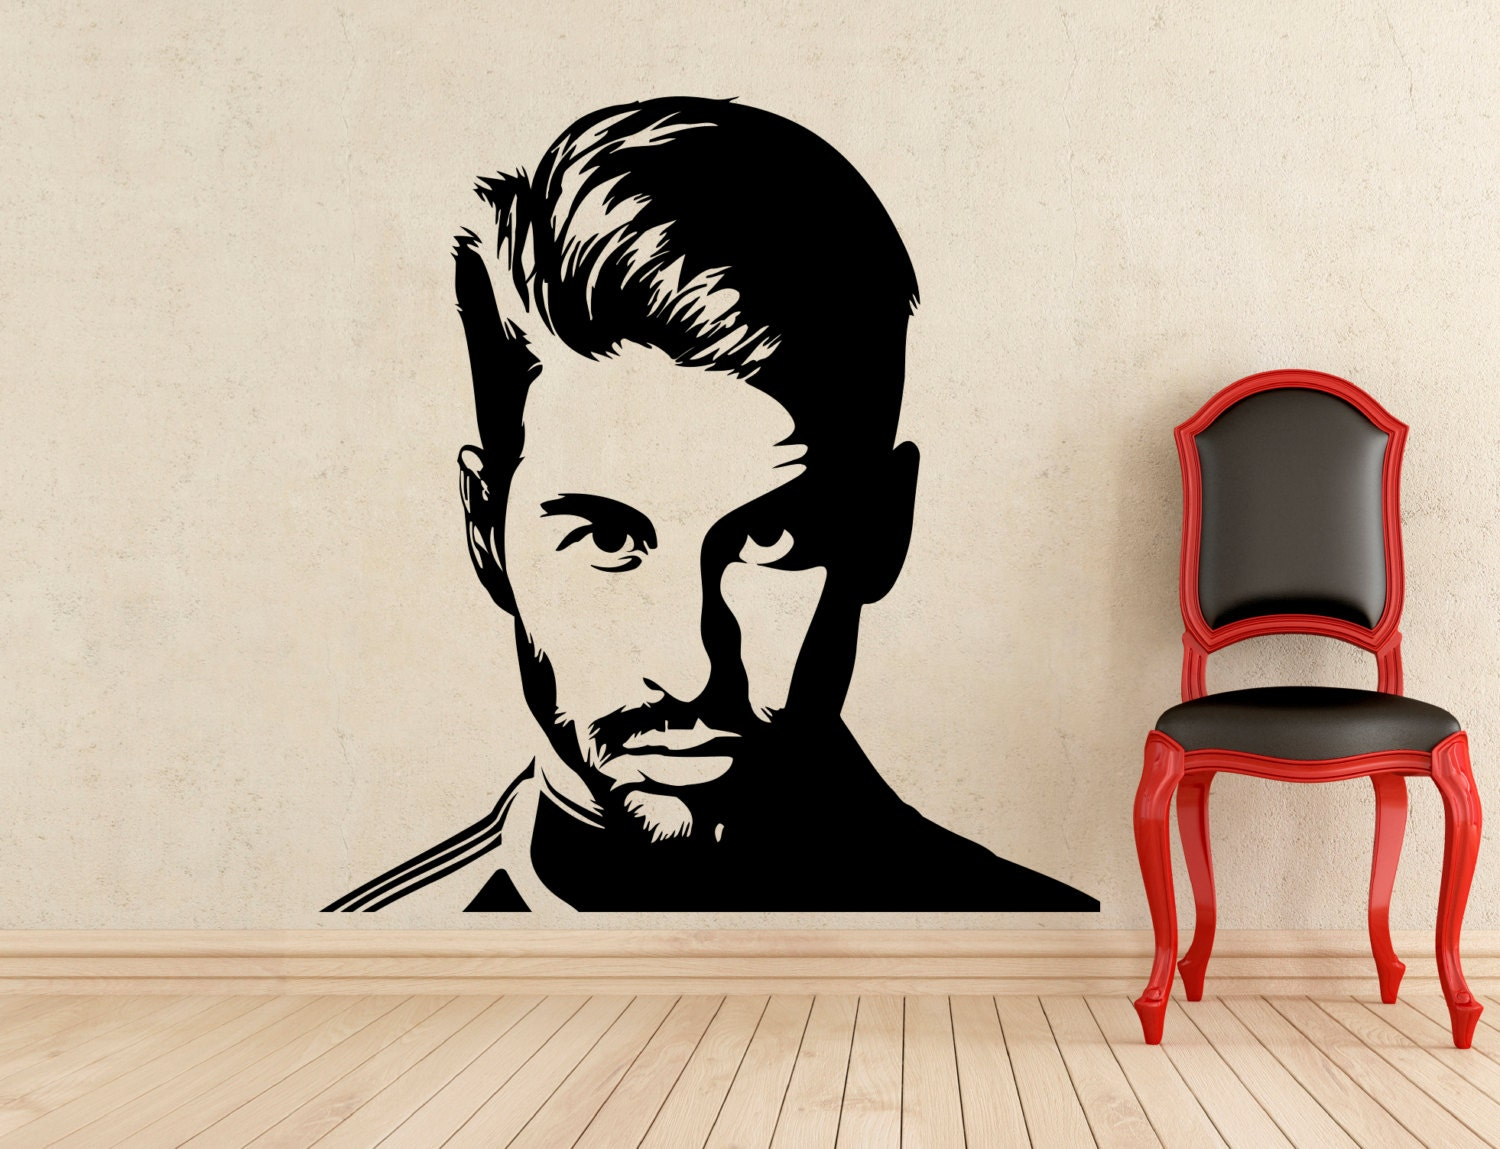 Wallpaper Stickers For Walls Sergio Ramos Wall Vinyl Decal Real Madrid Football Sticker